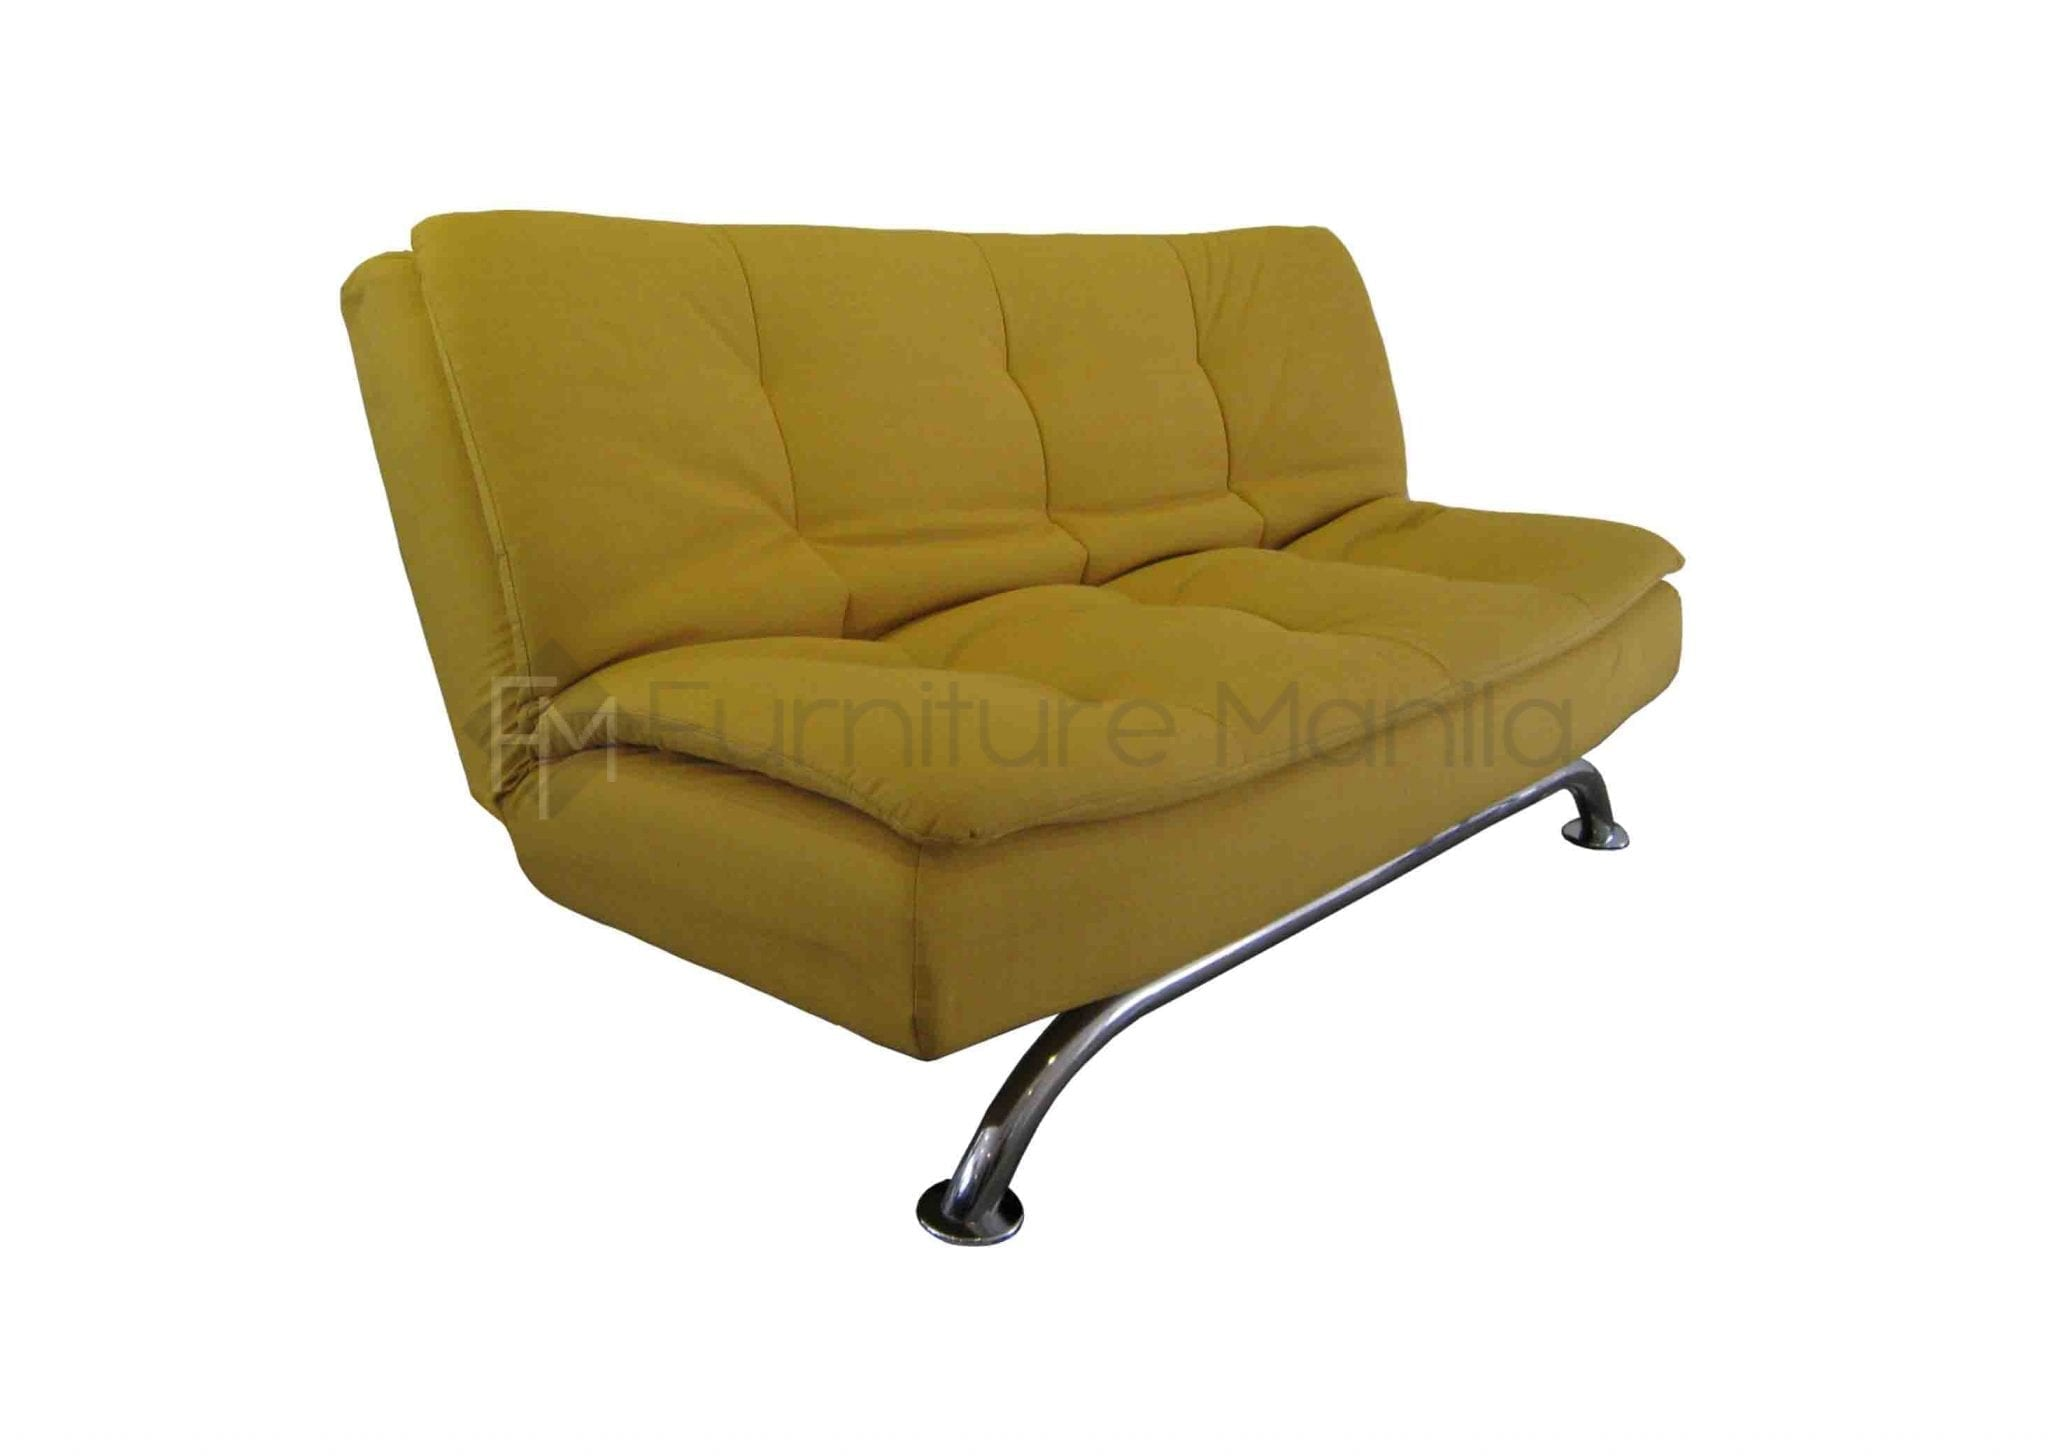 78 office furniture sofa bed foam sofa bed jh033 for Furniture n more beds